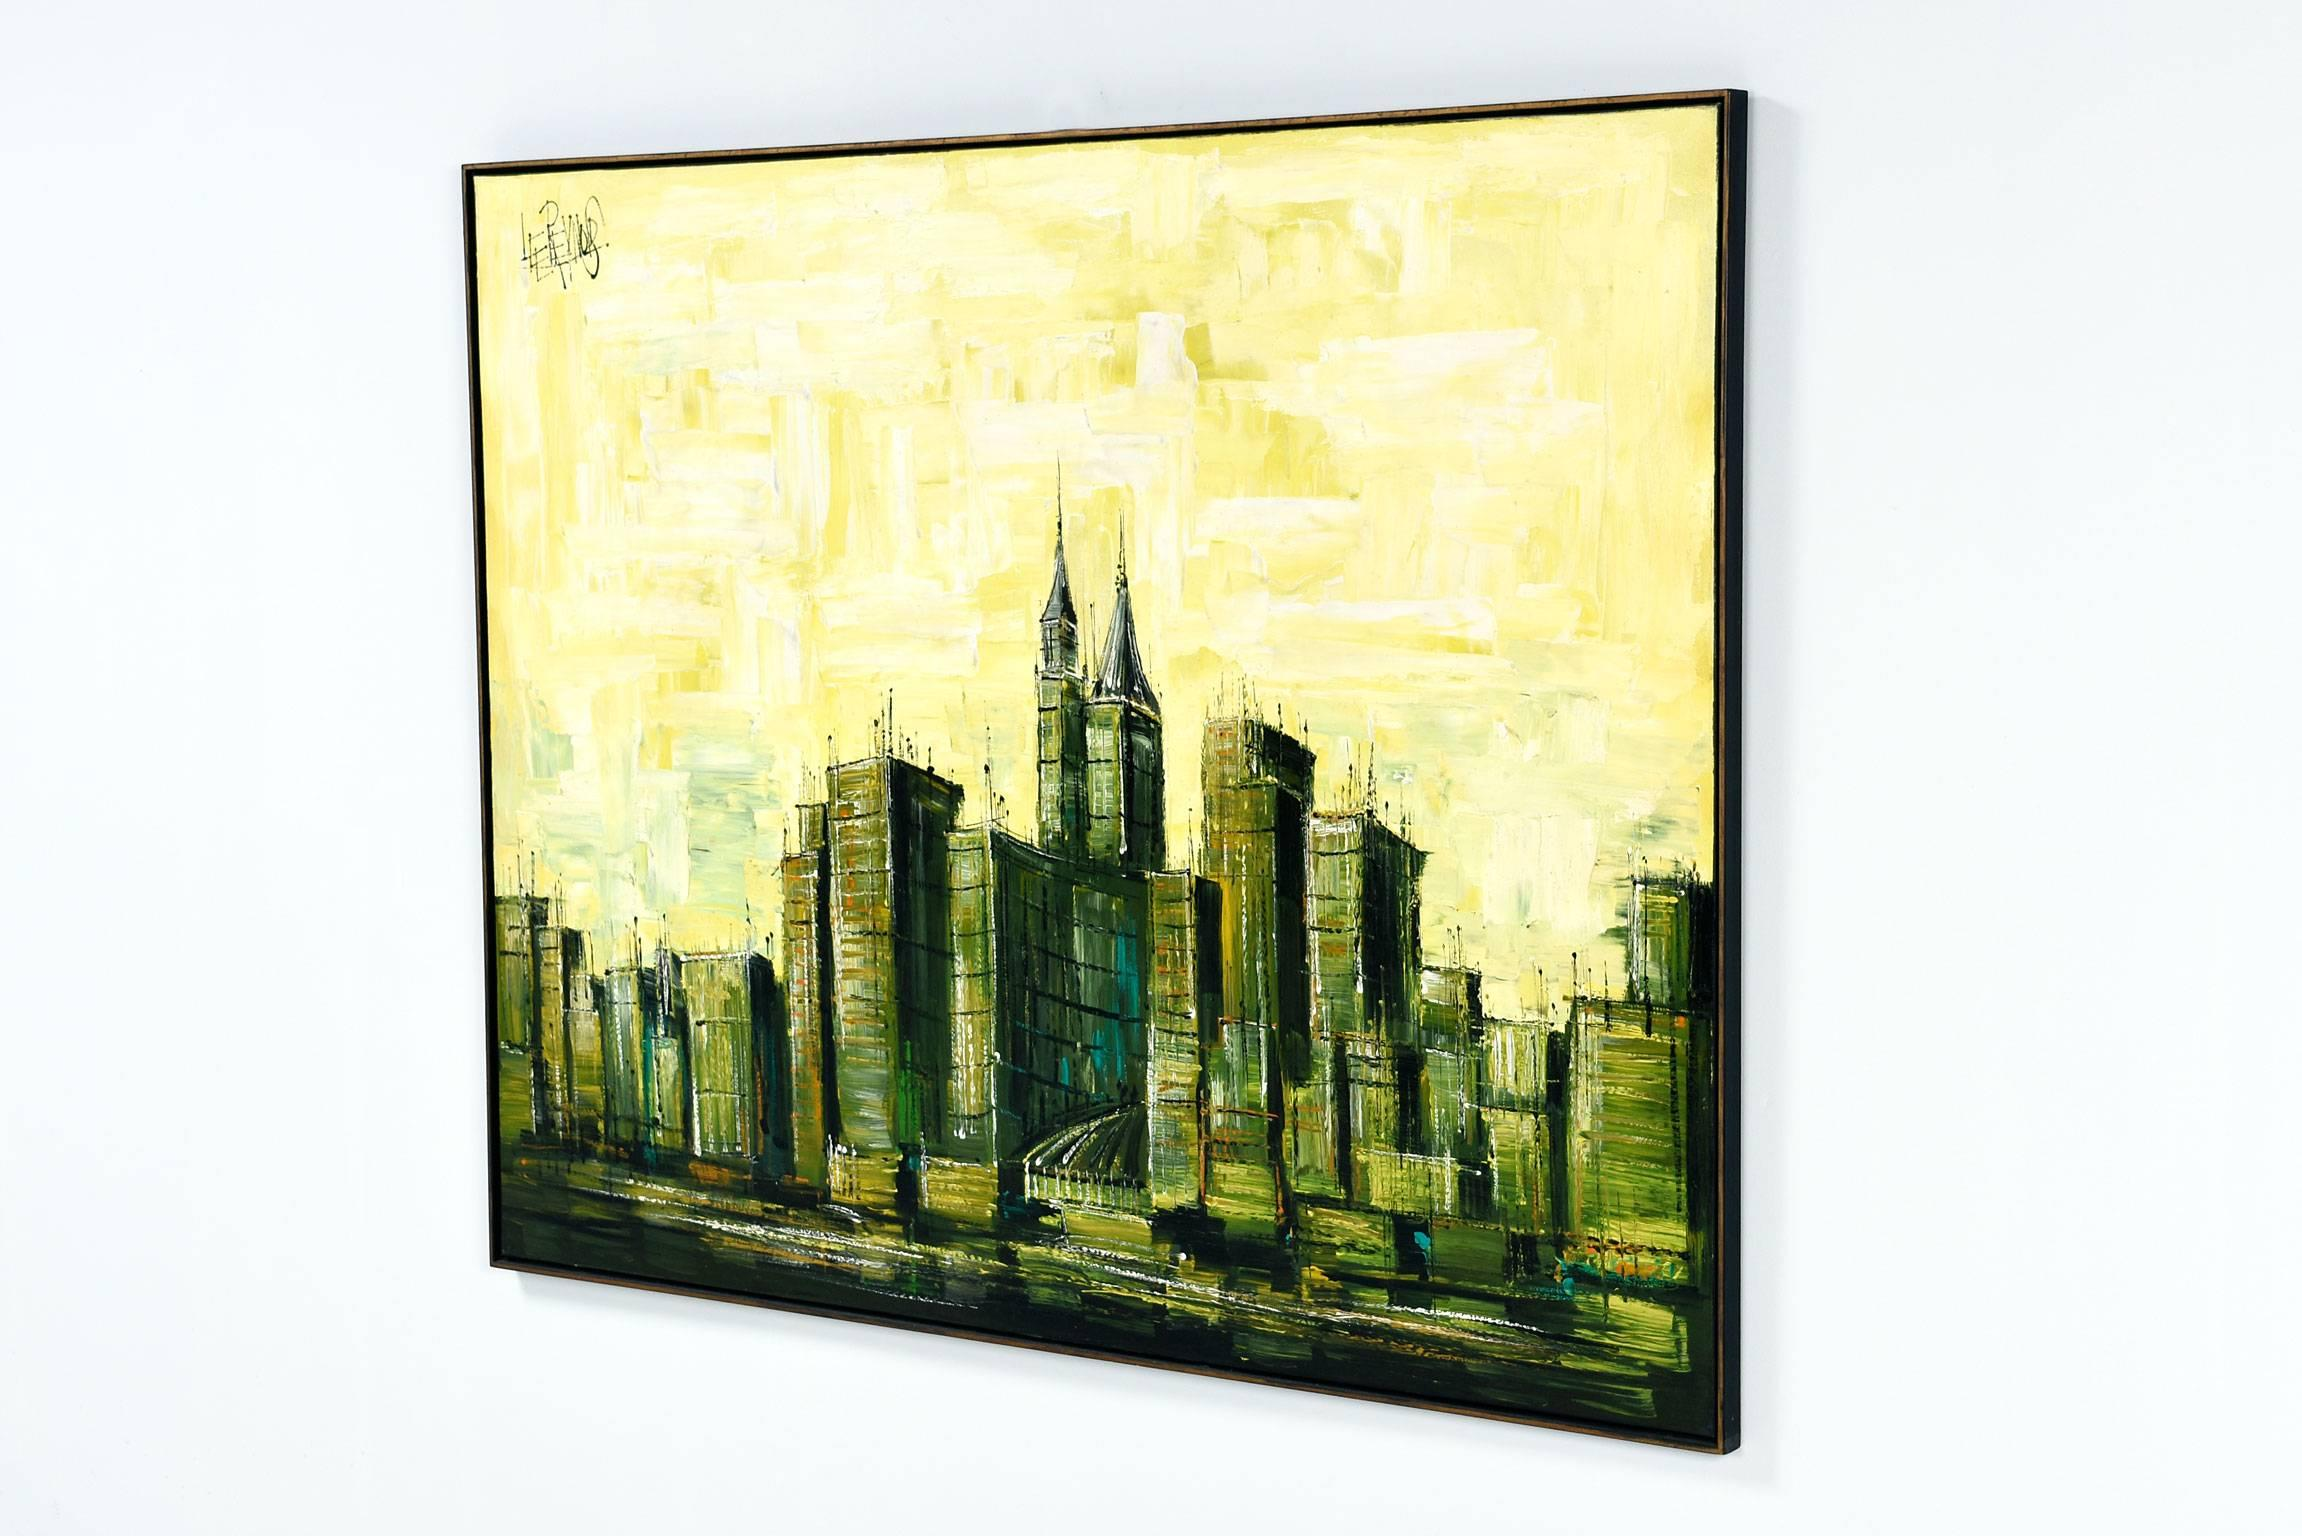 Mid-Century Modern Lee Reynolds Cityscape Painting For Sale at 1stdibs